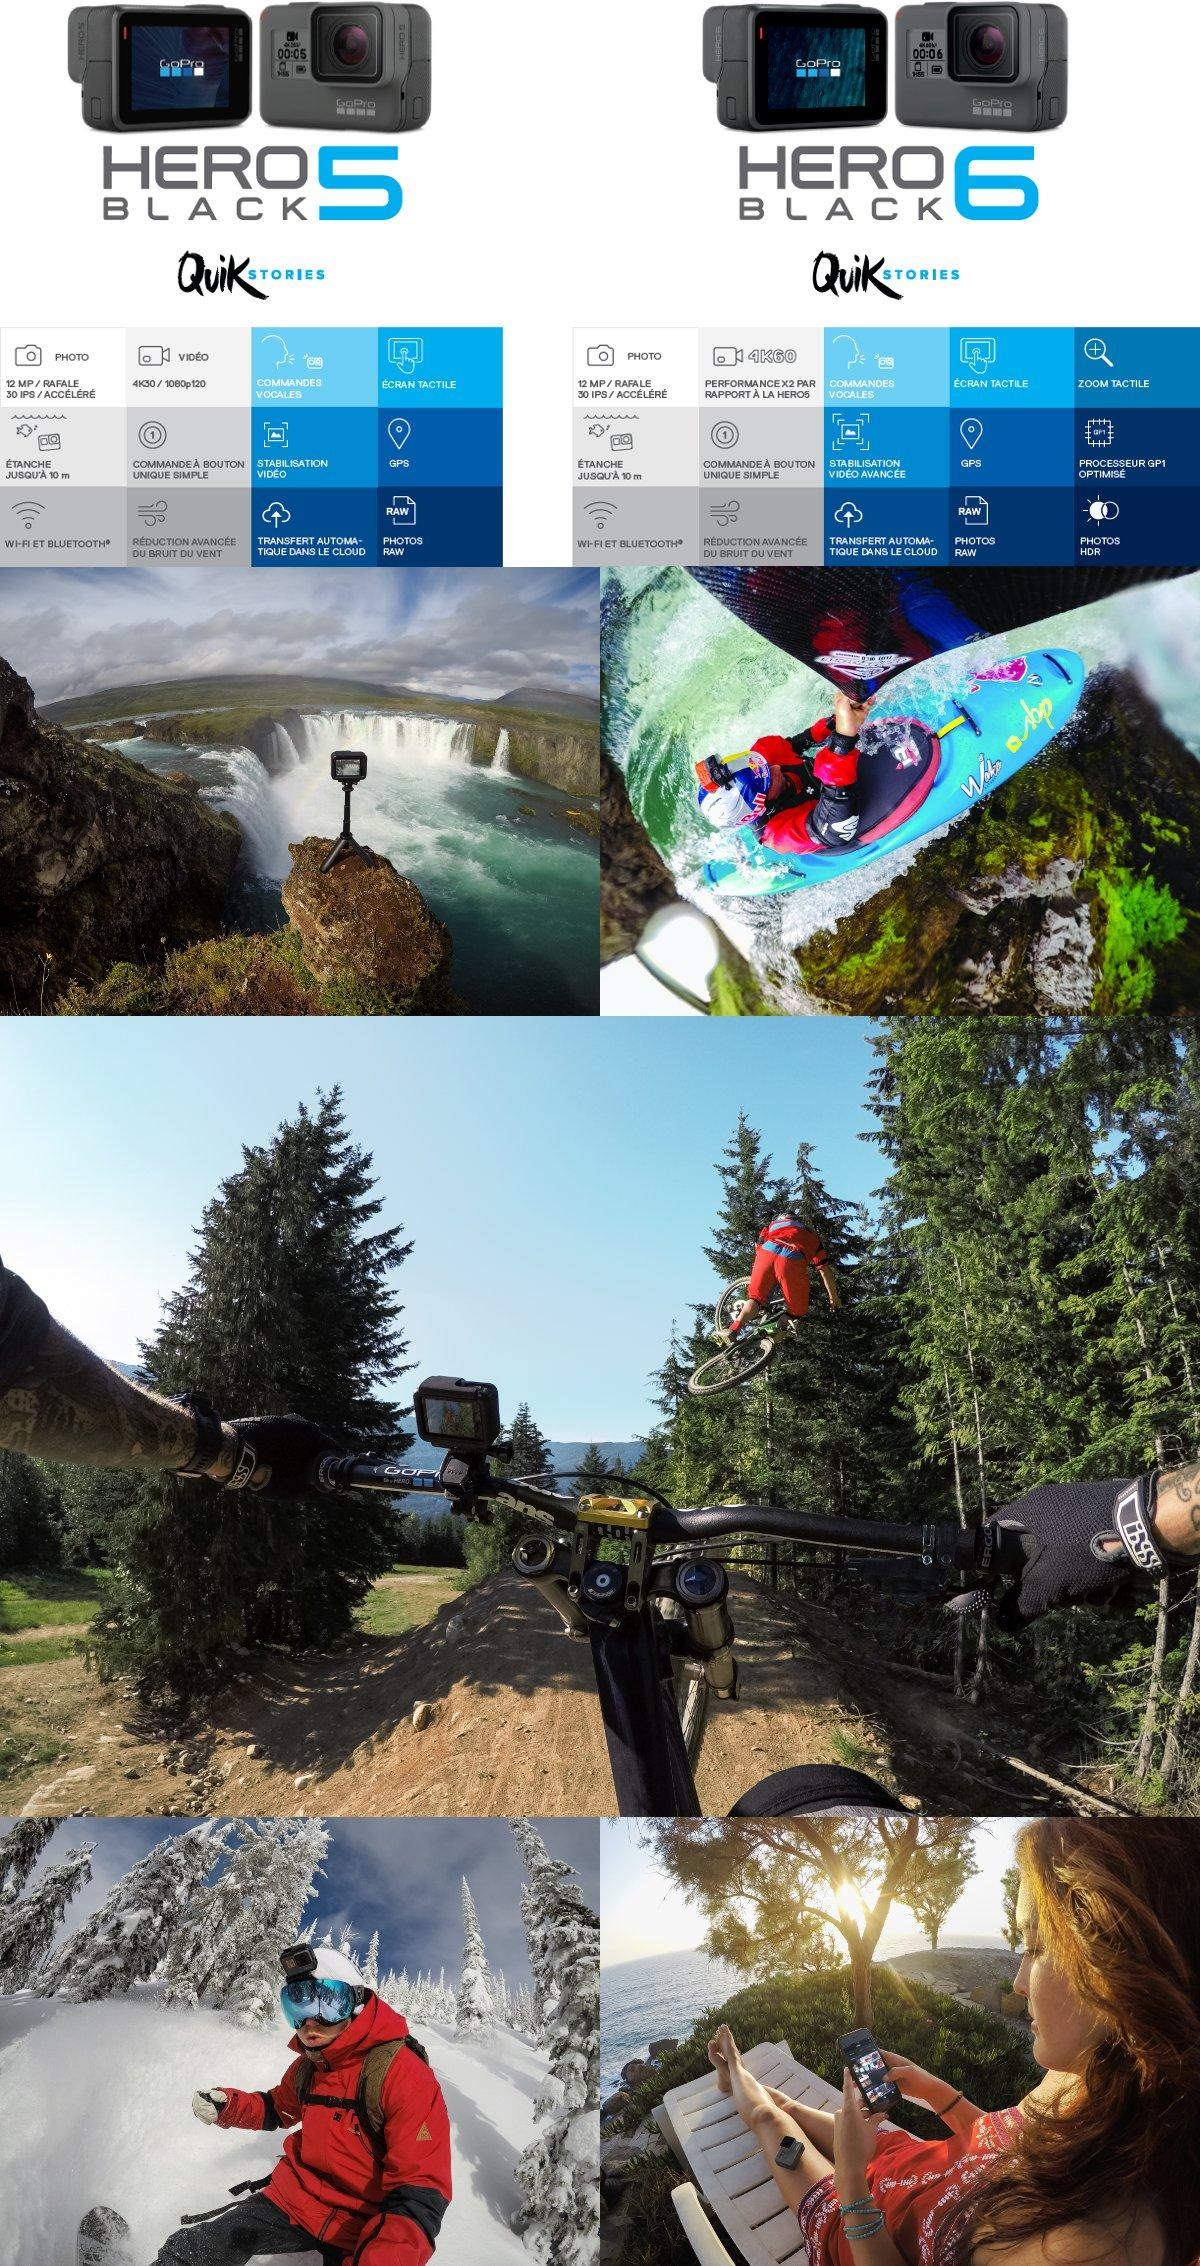 nouvelle gopro hero6 black quikstories comparatif hero5 black